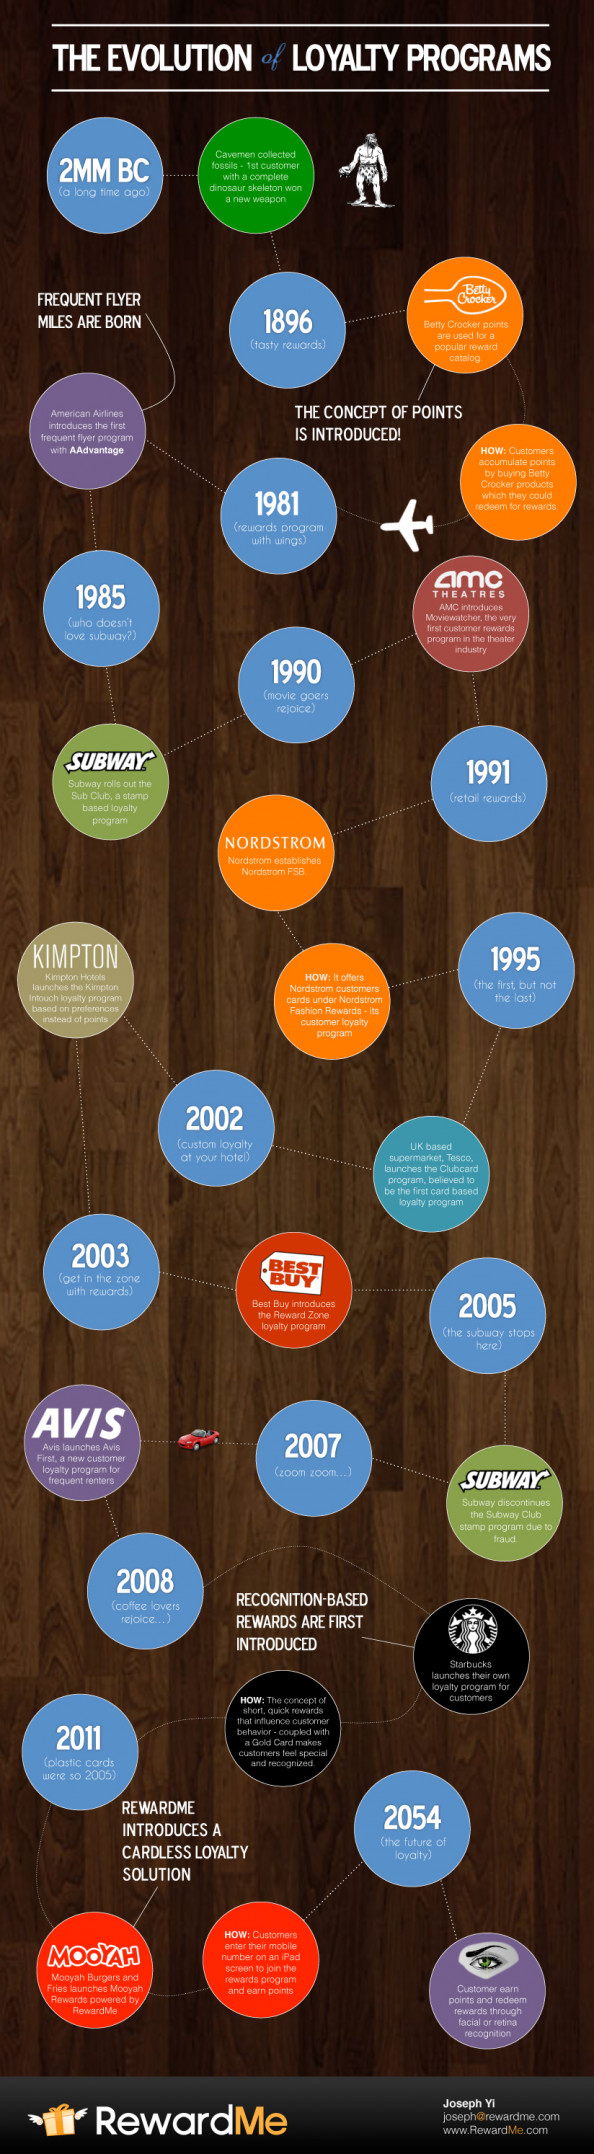 The Evolution of Loyalty Programs Infographic